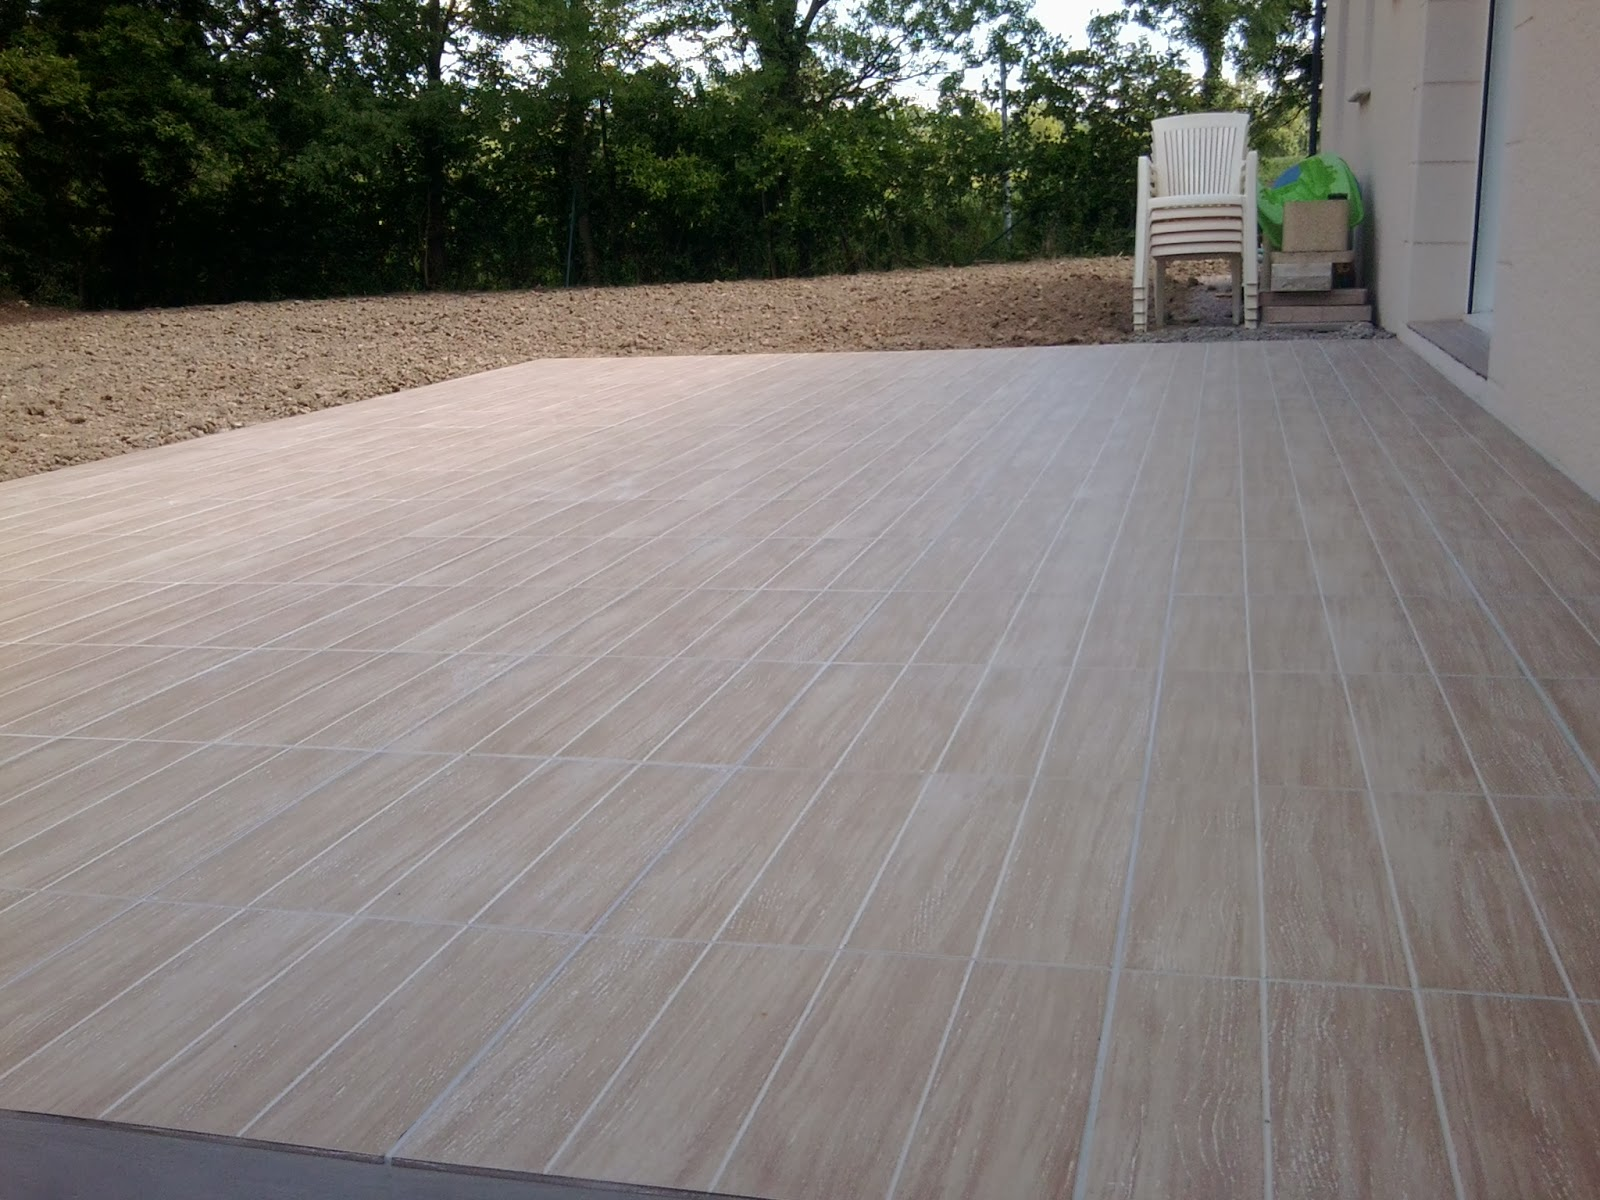 Pose carrelage terrasse imitation bois for Carrelage exterieur 10x20